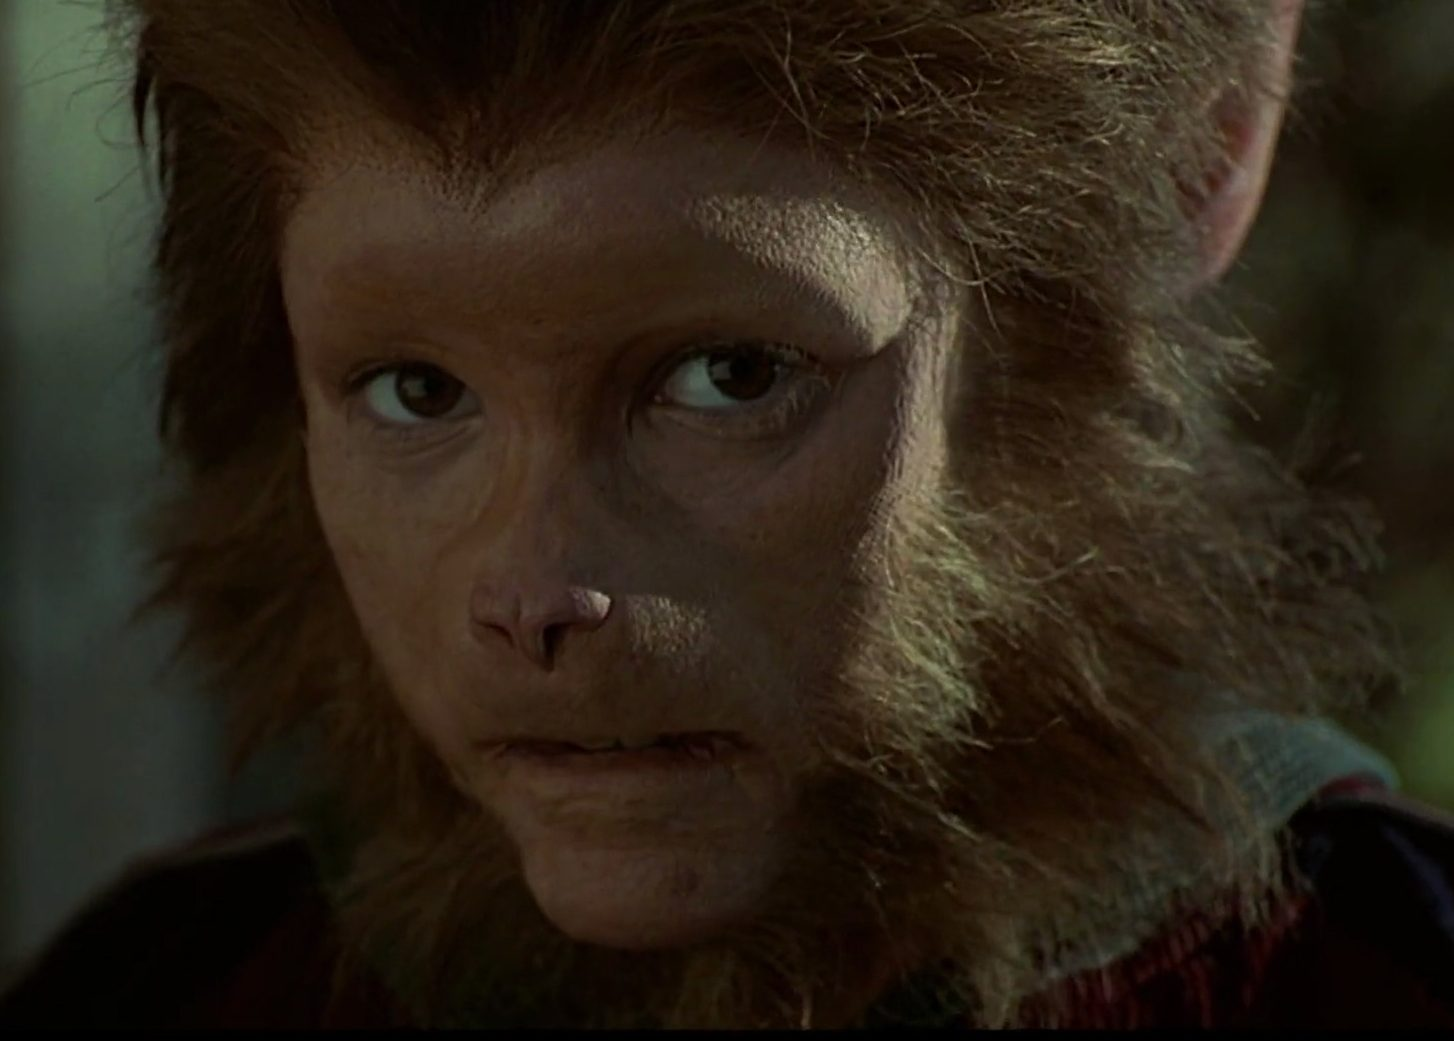 Peter Shepherds monkey form e1615213552766 20 Facts You Probably Didn't Know About Jumanji